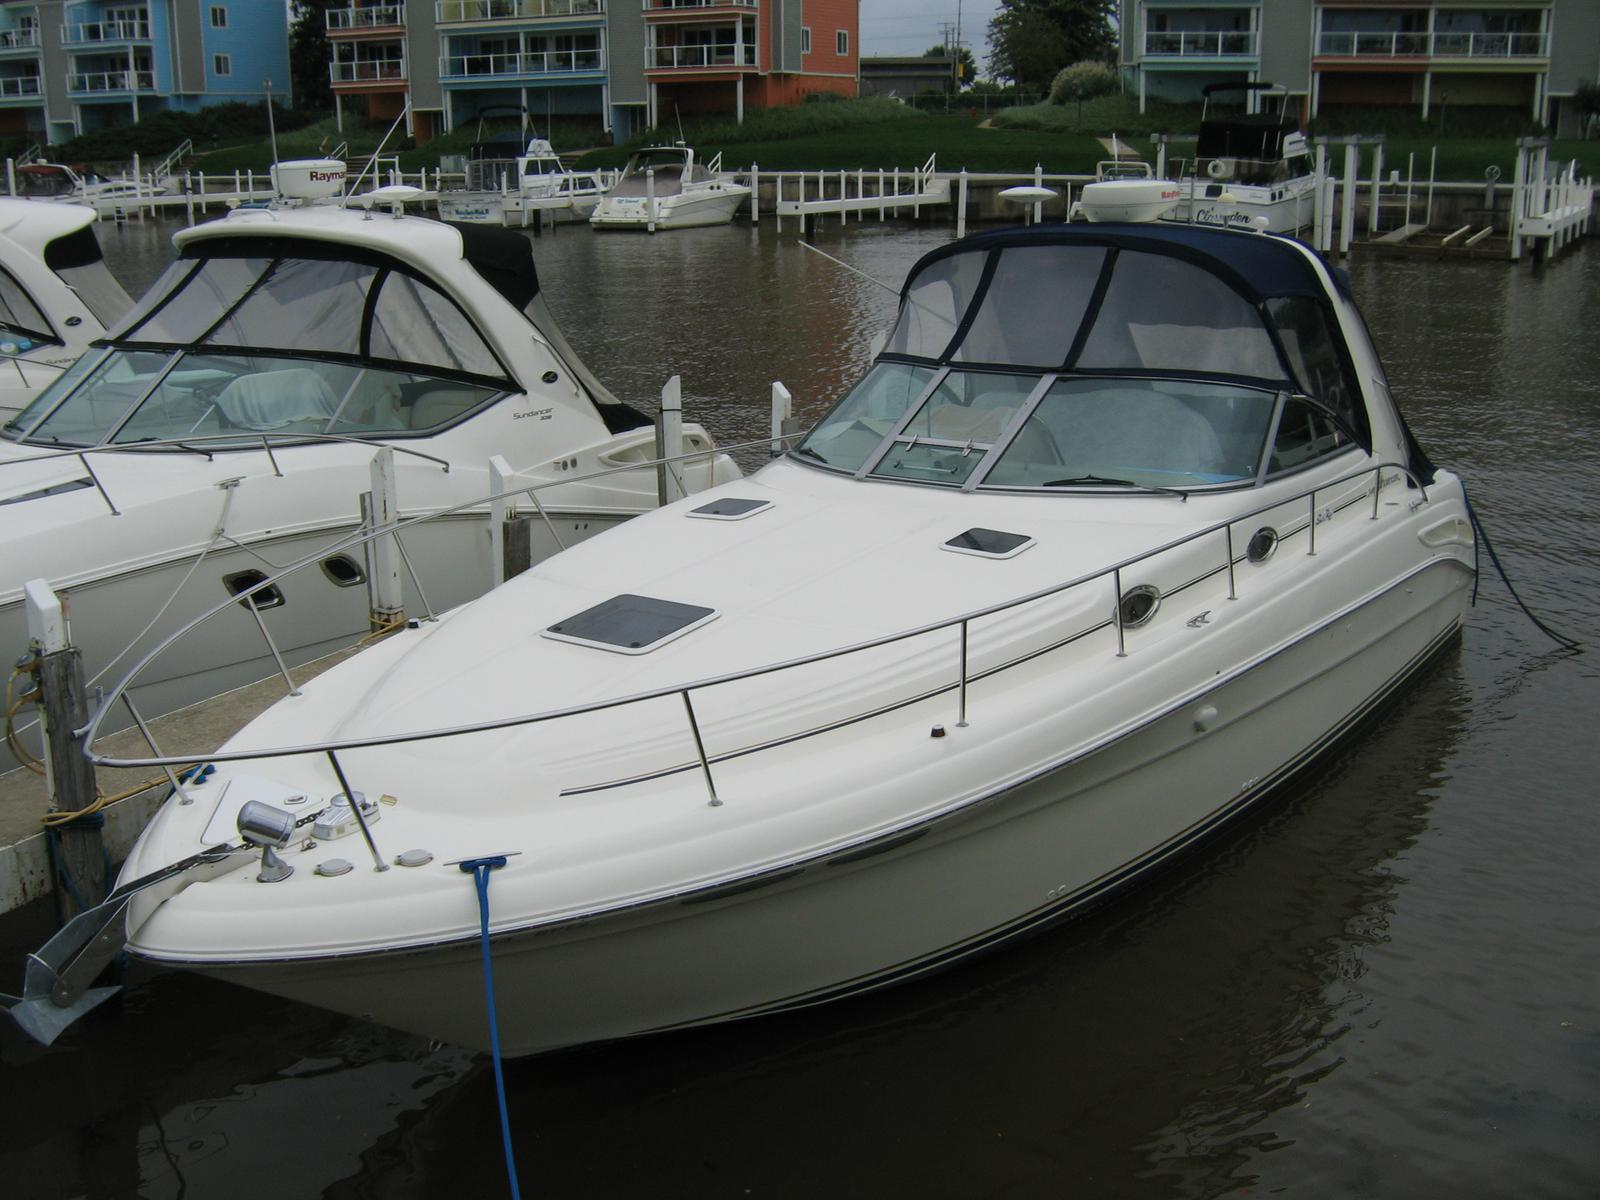 2000 Sea Ray boat for sale, model of the boat is 340 Sundancer & Image # 1 of 11